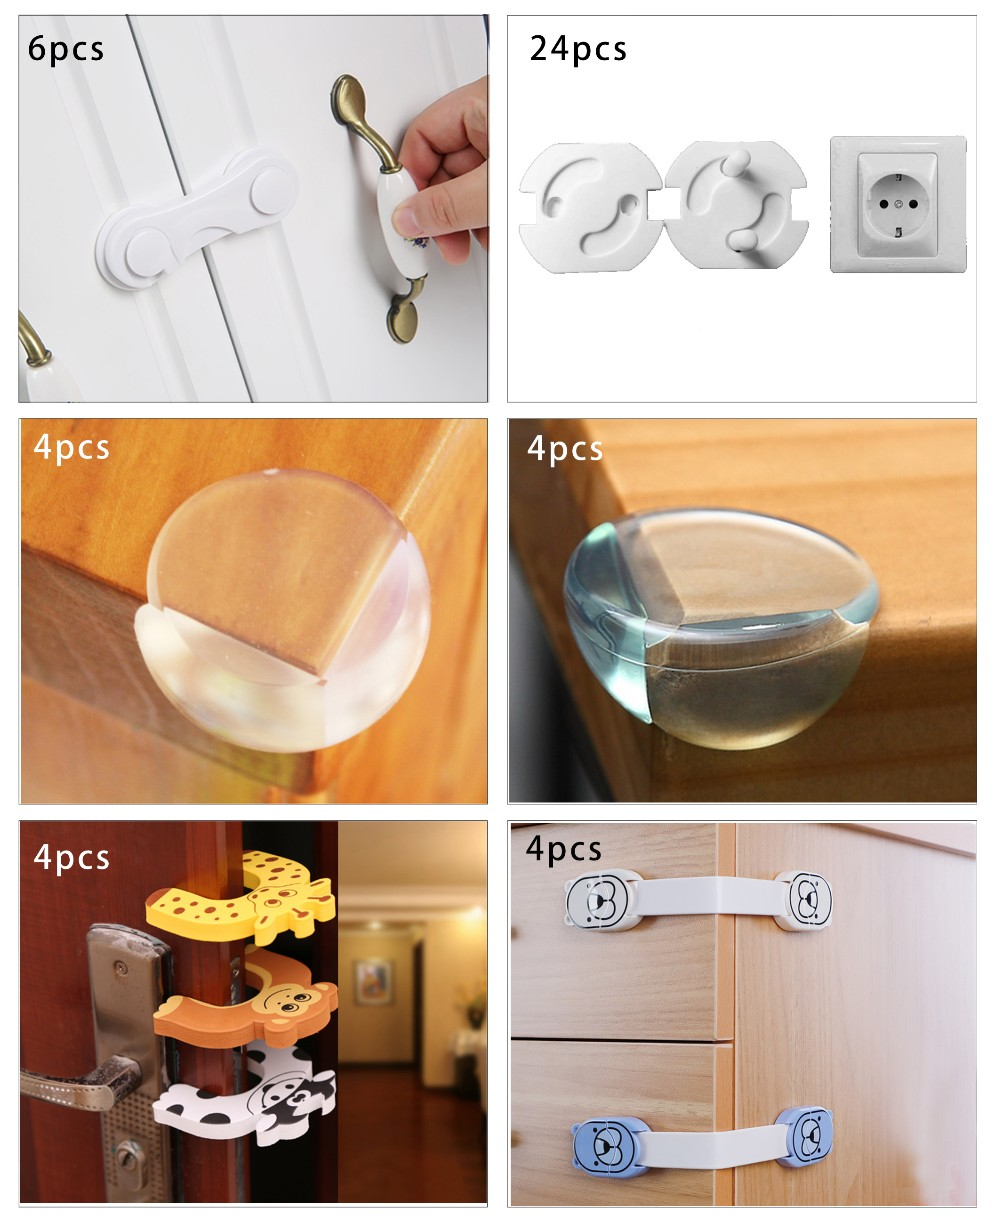 Child safety cabinet lock kit protects baby safety